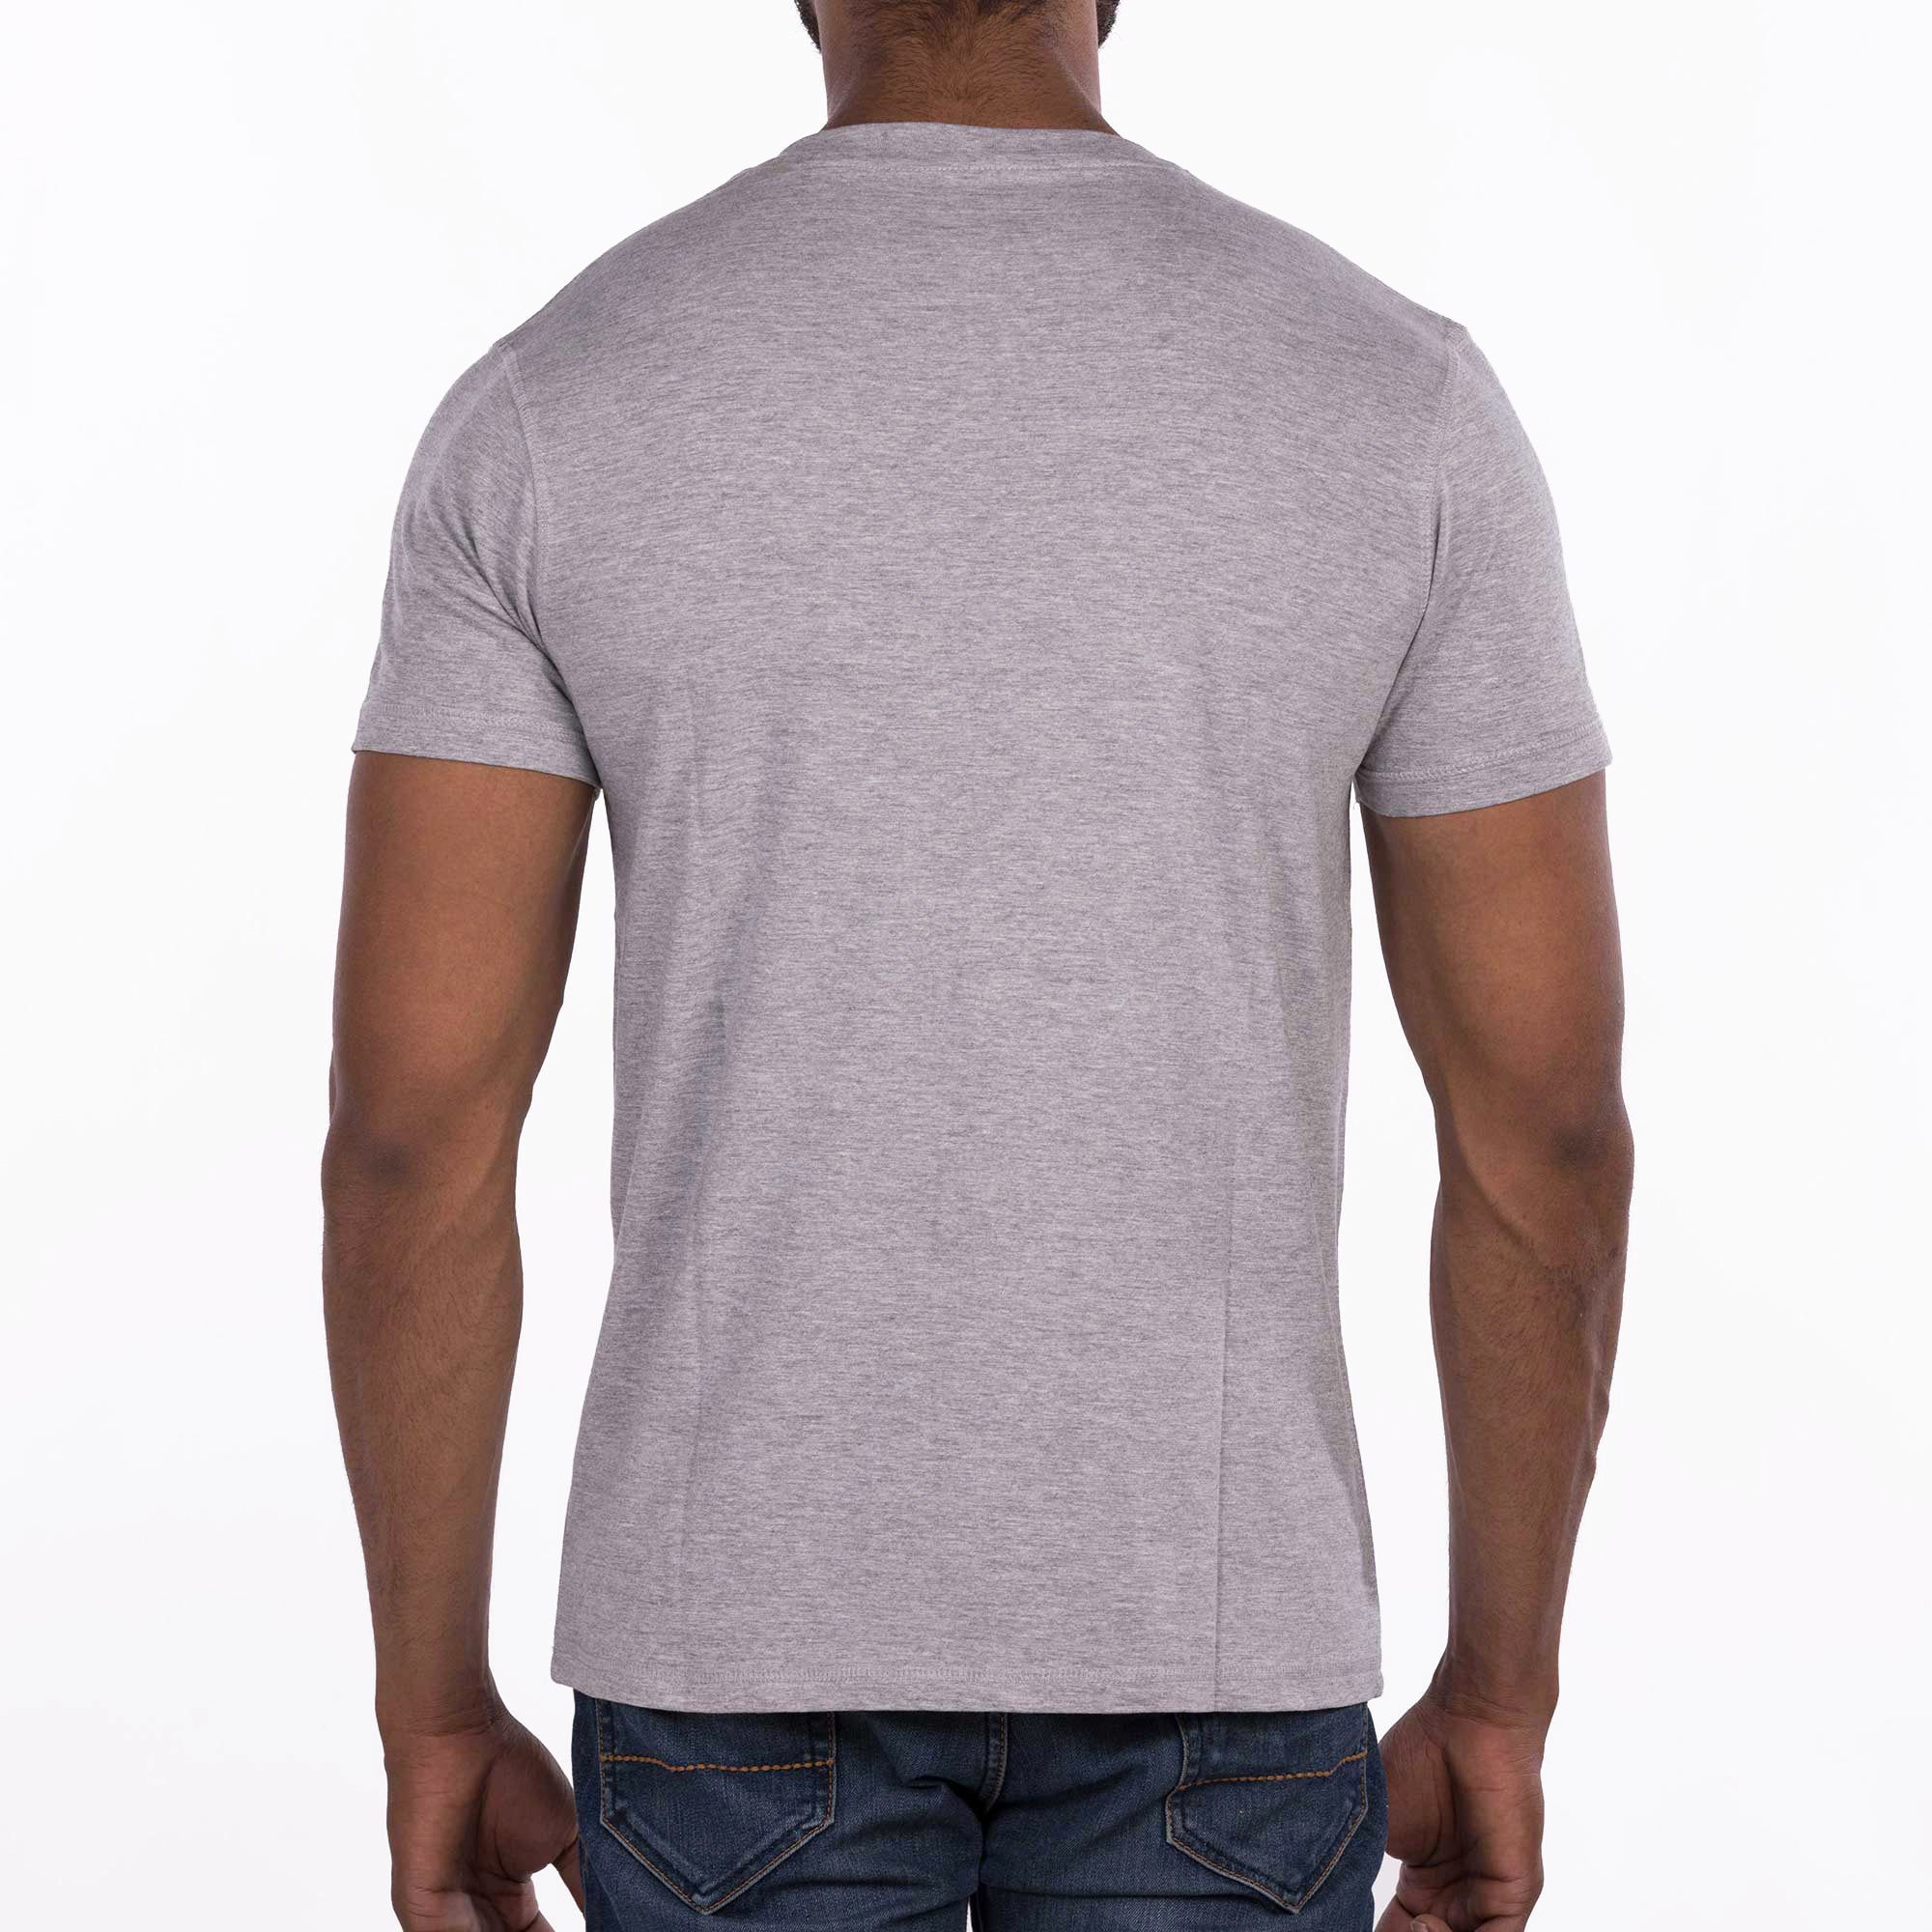 DB025 T-Shirt V-Neck - Grey Melange